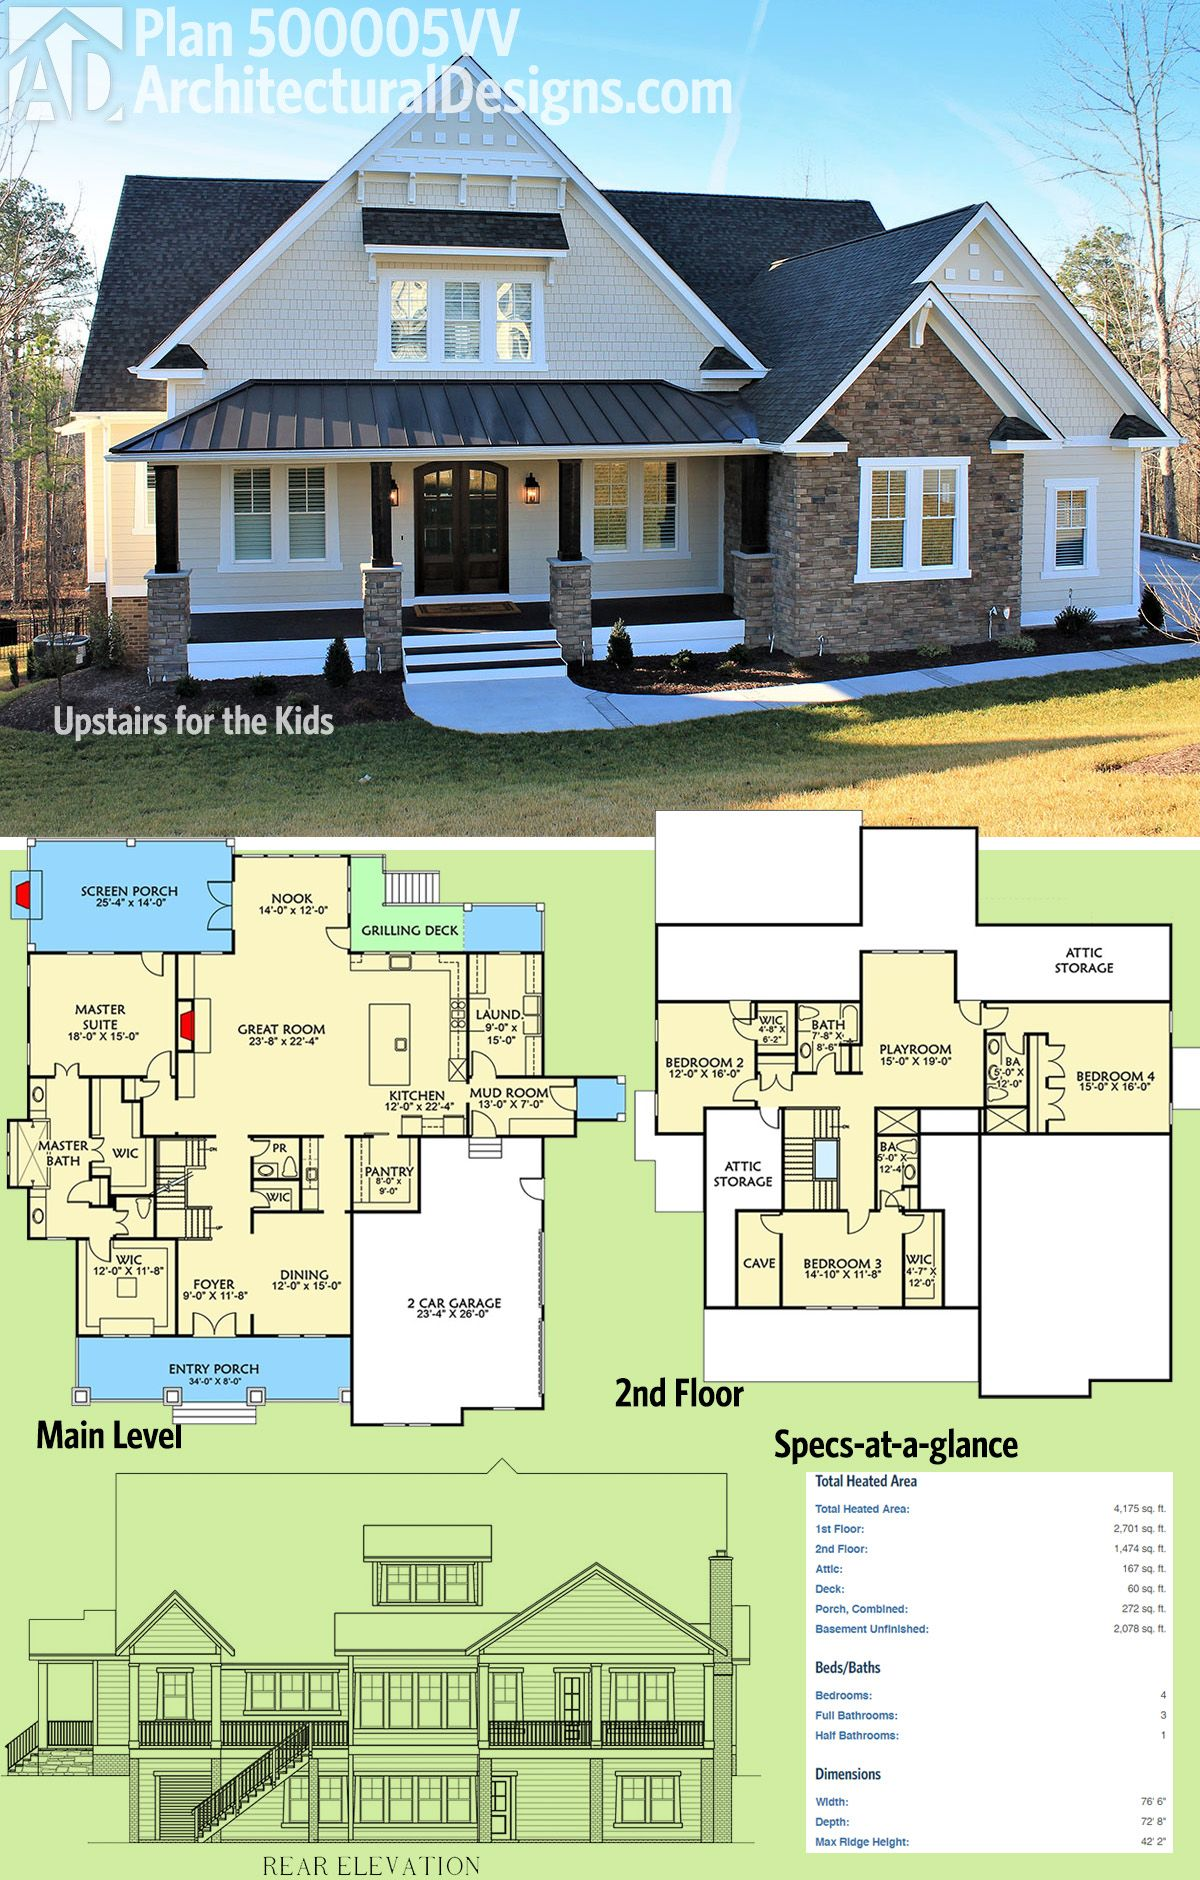 Plan 500005vv Upstairs For The Kids Architectural Design House Plans Square Feet And Living